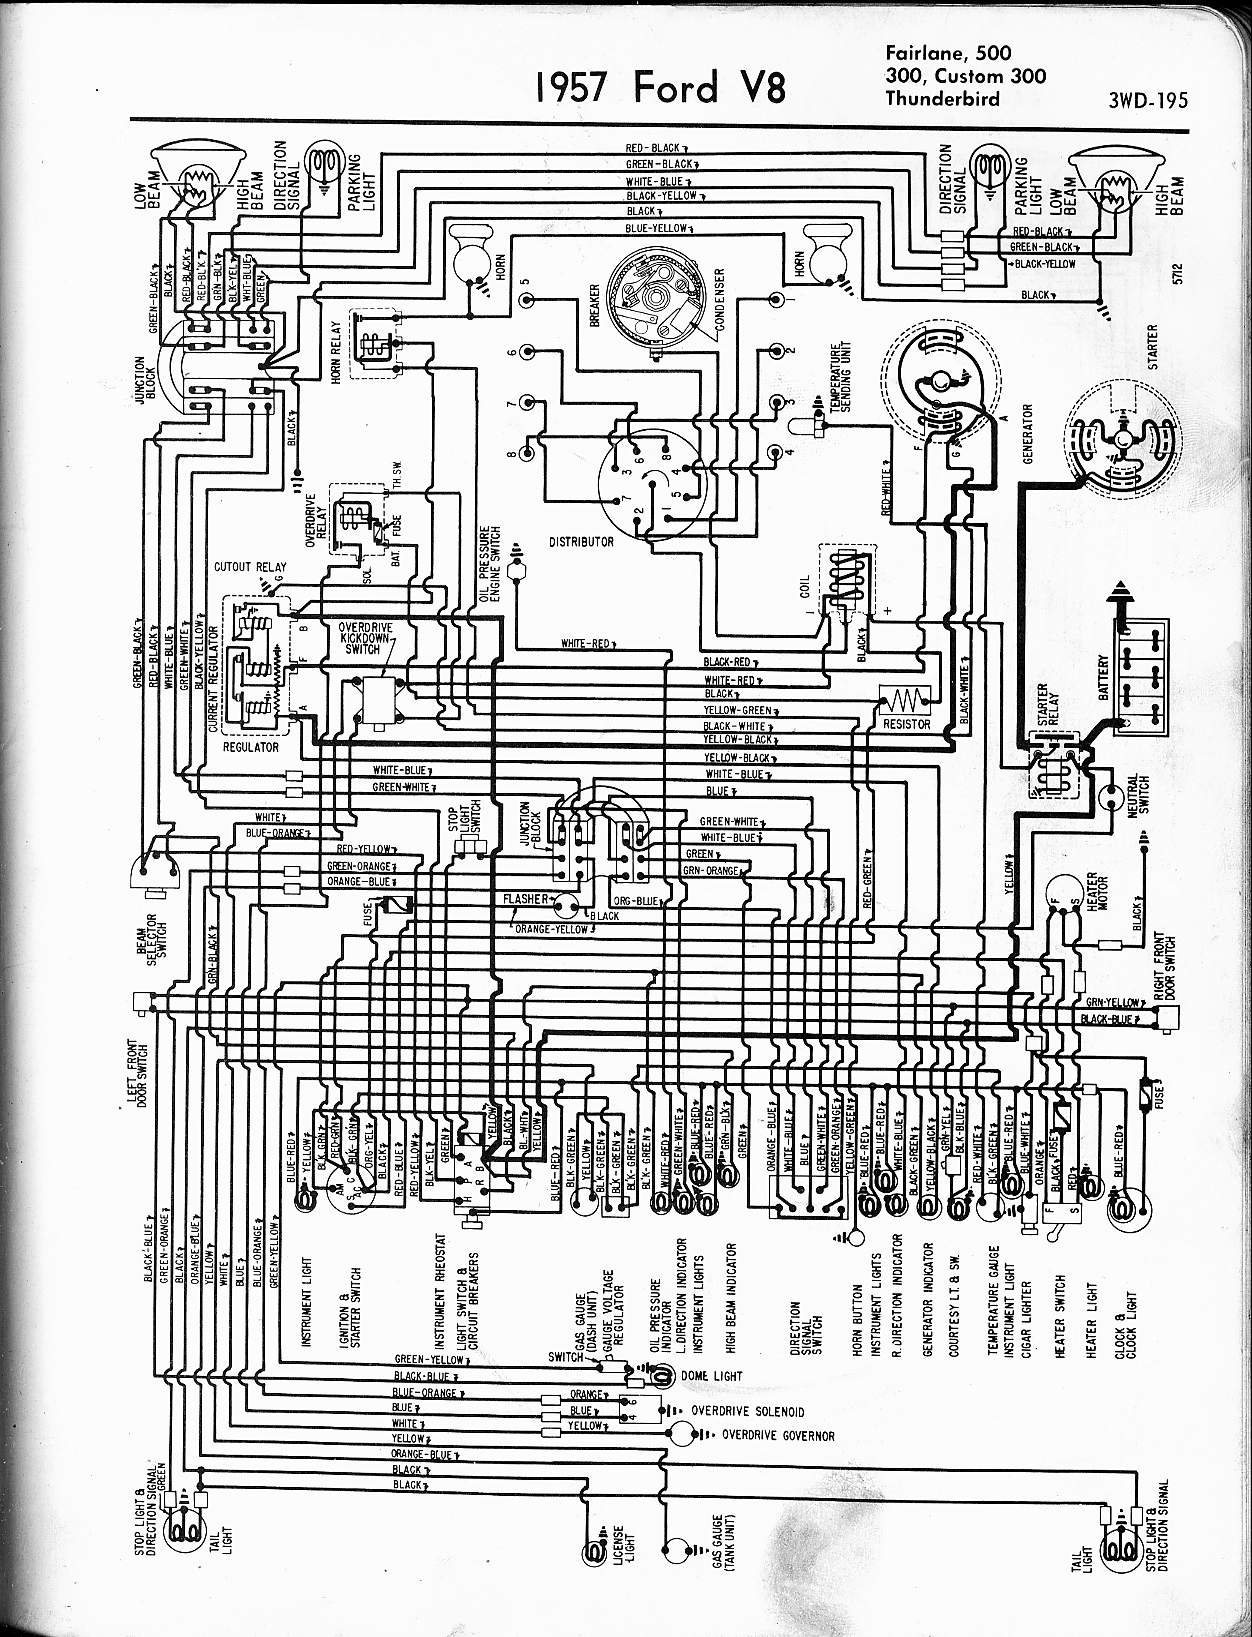 56 Chevy Truck Wiring Diagram For A Library Ford 1956 Automotive Diagrams Chevrolet